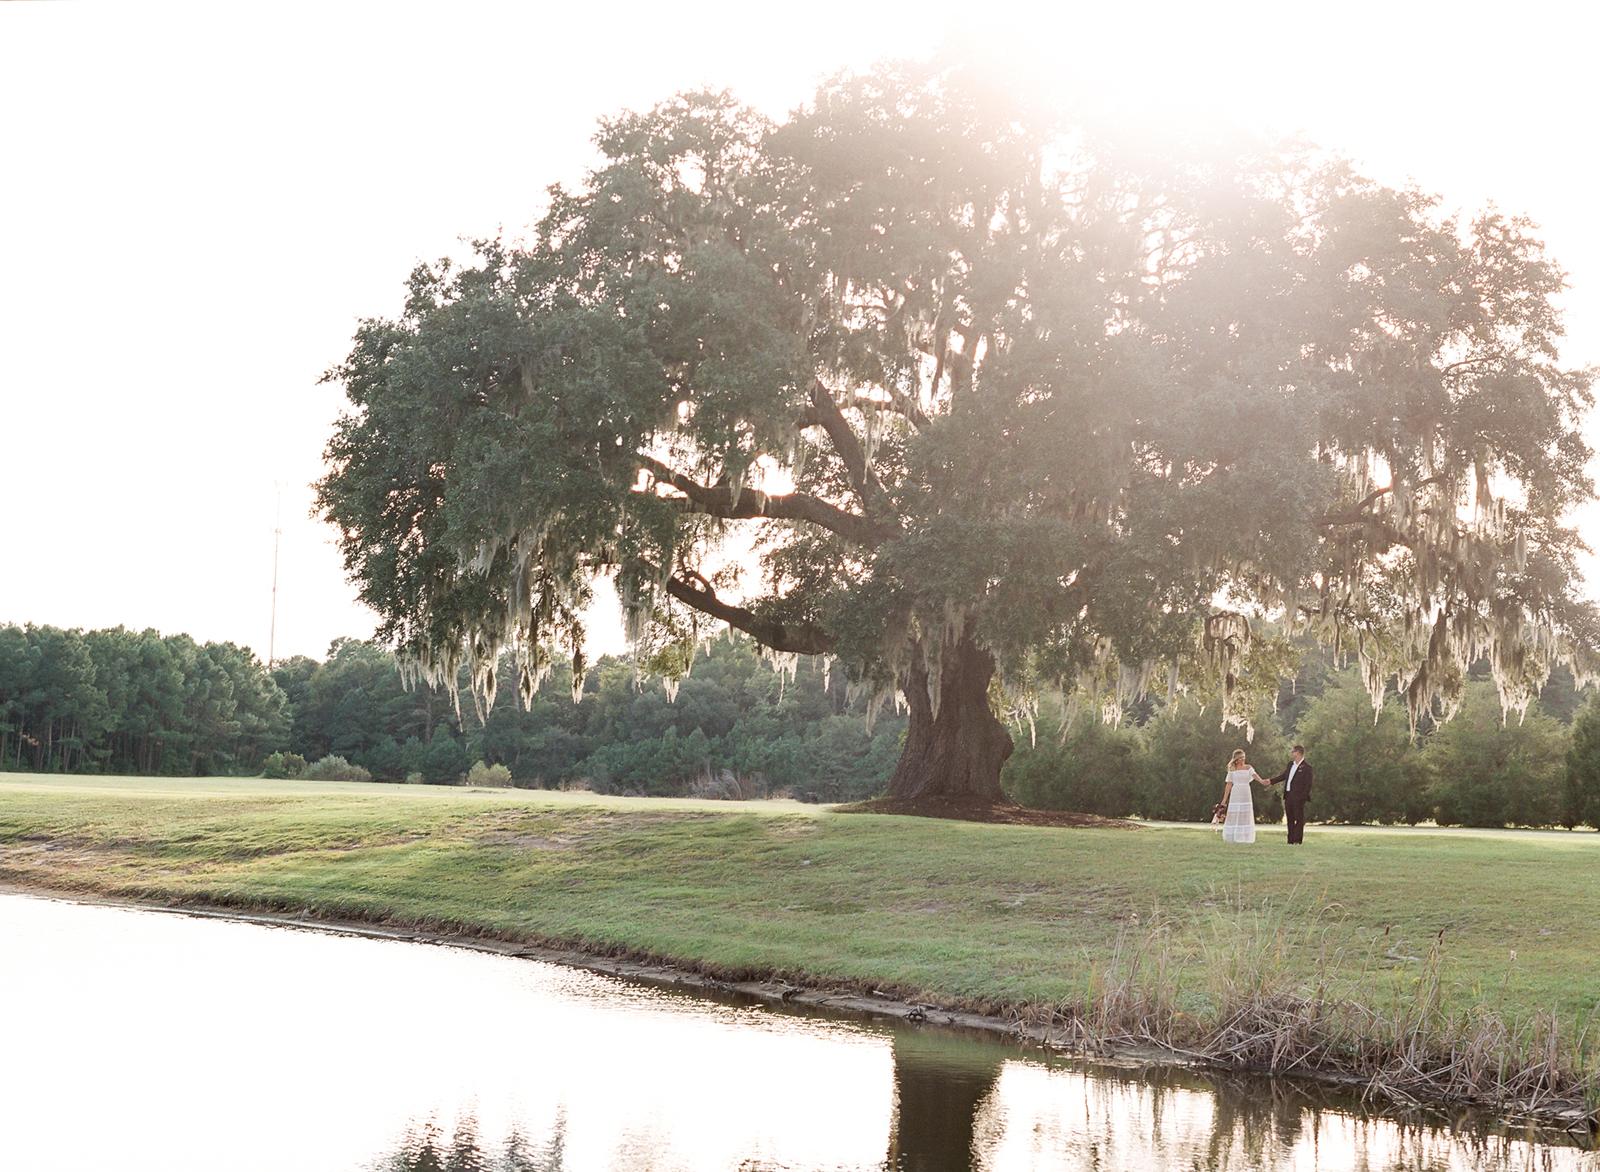 Couple stands in the distance under large tree by water